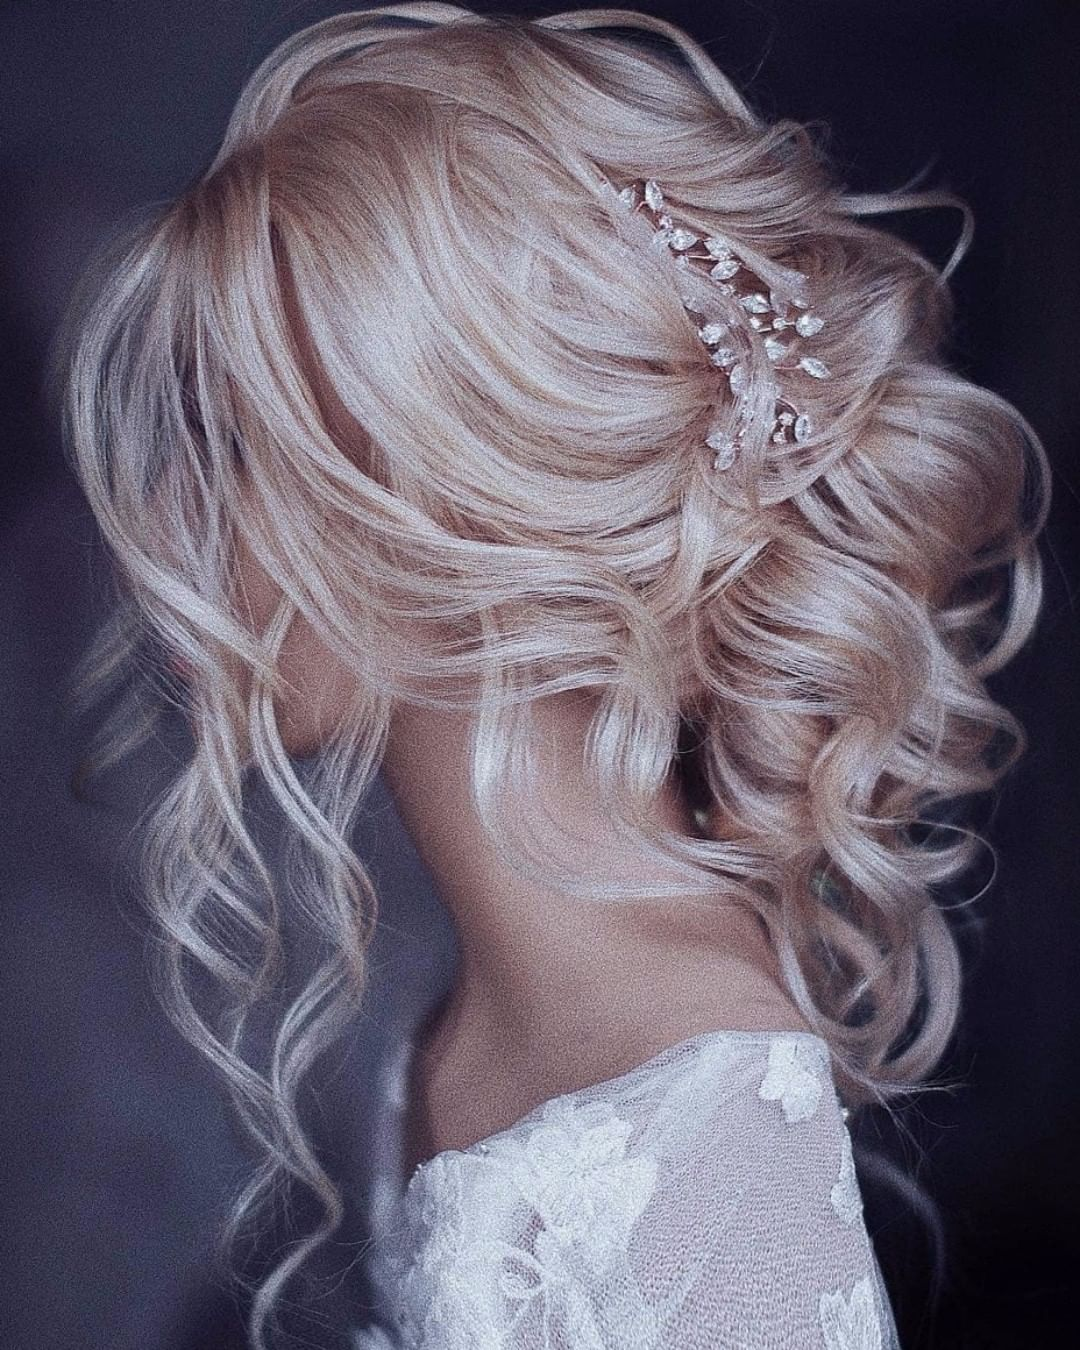 Bridal Subscription Box On Instagram Tag A Bride Who Would Love This Gorgeous Loose Updo Bride Hairstyles Trendy Wedding Hairstyles Wedding Hair Inspiration